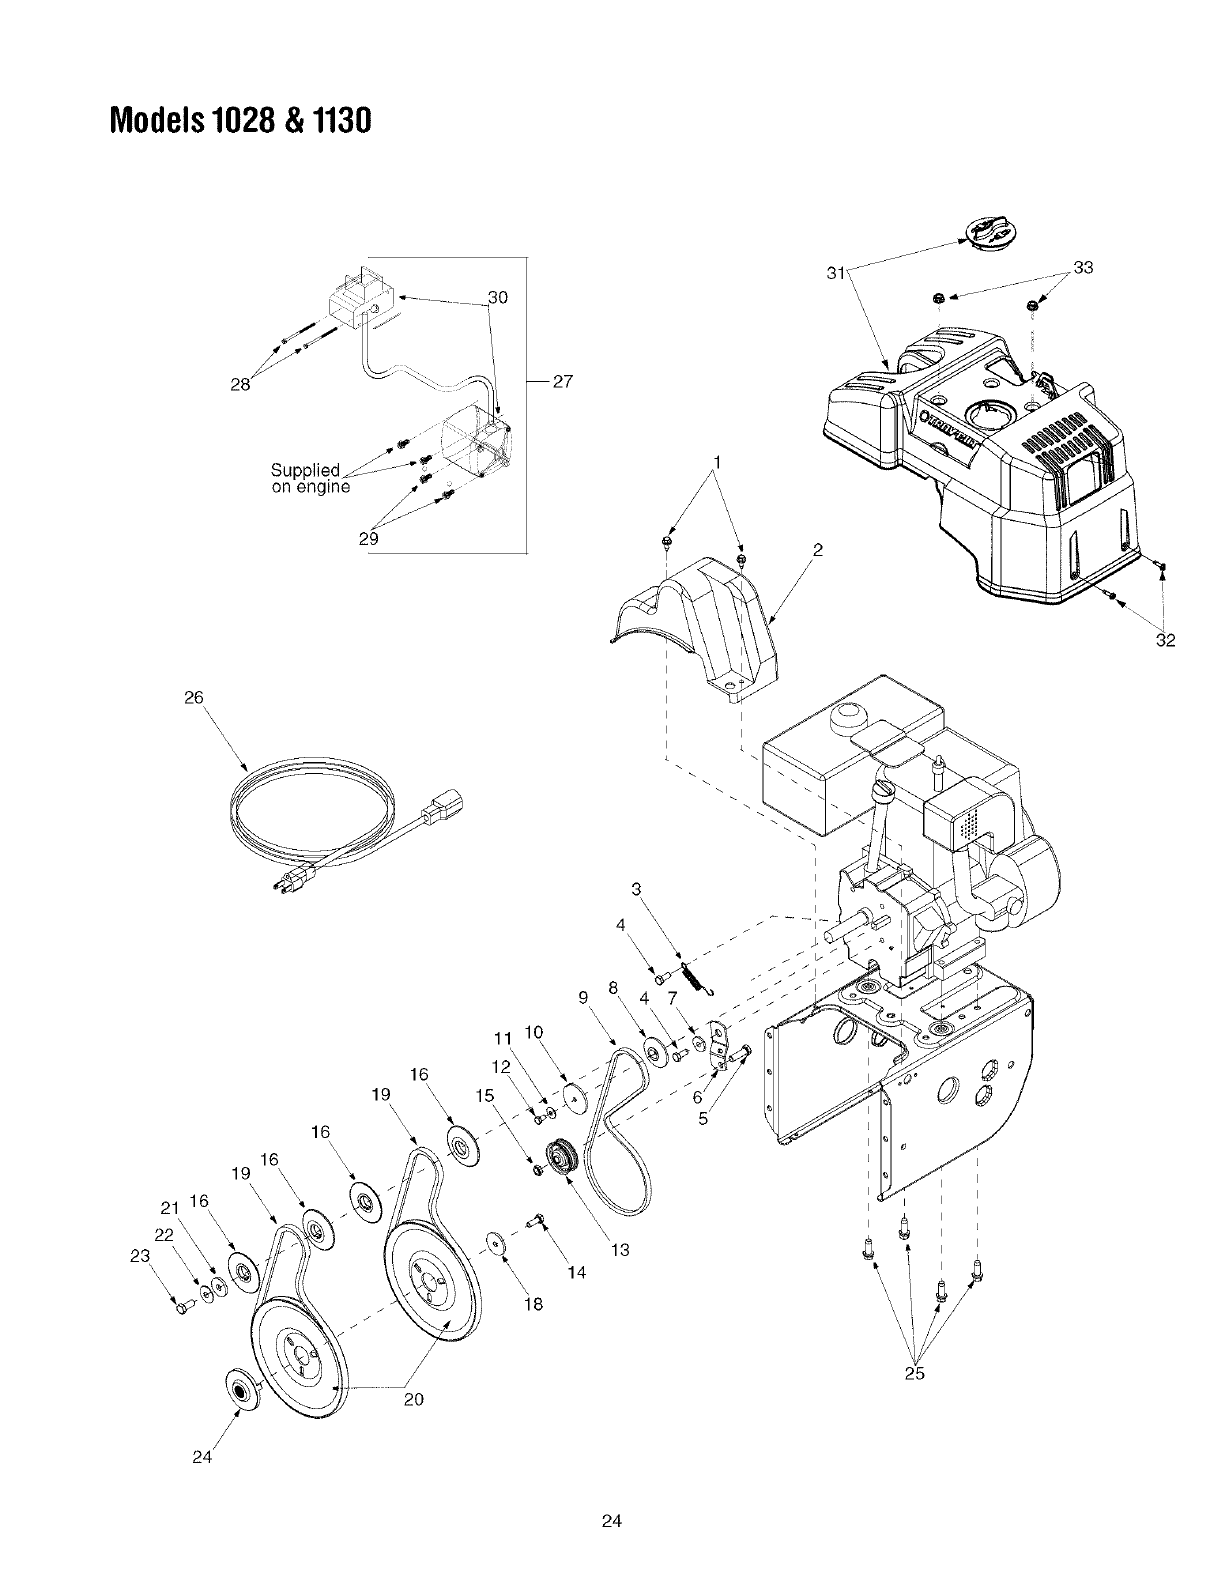 Page 24 of Toro Snow Blower 1028 User Guide